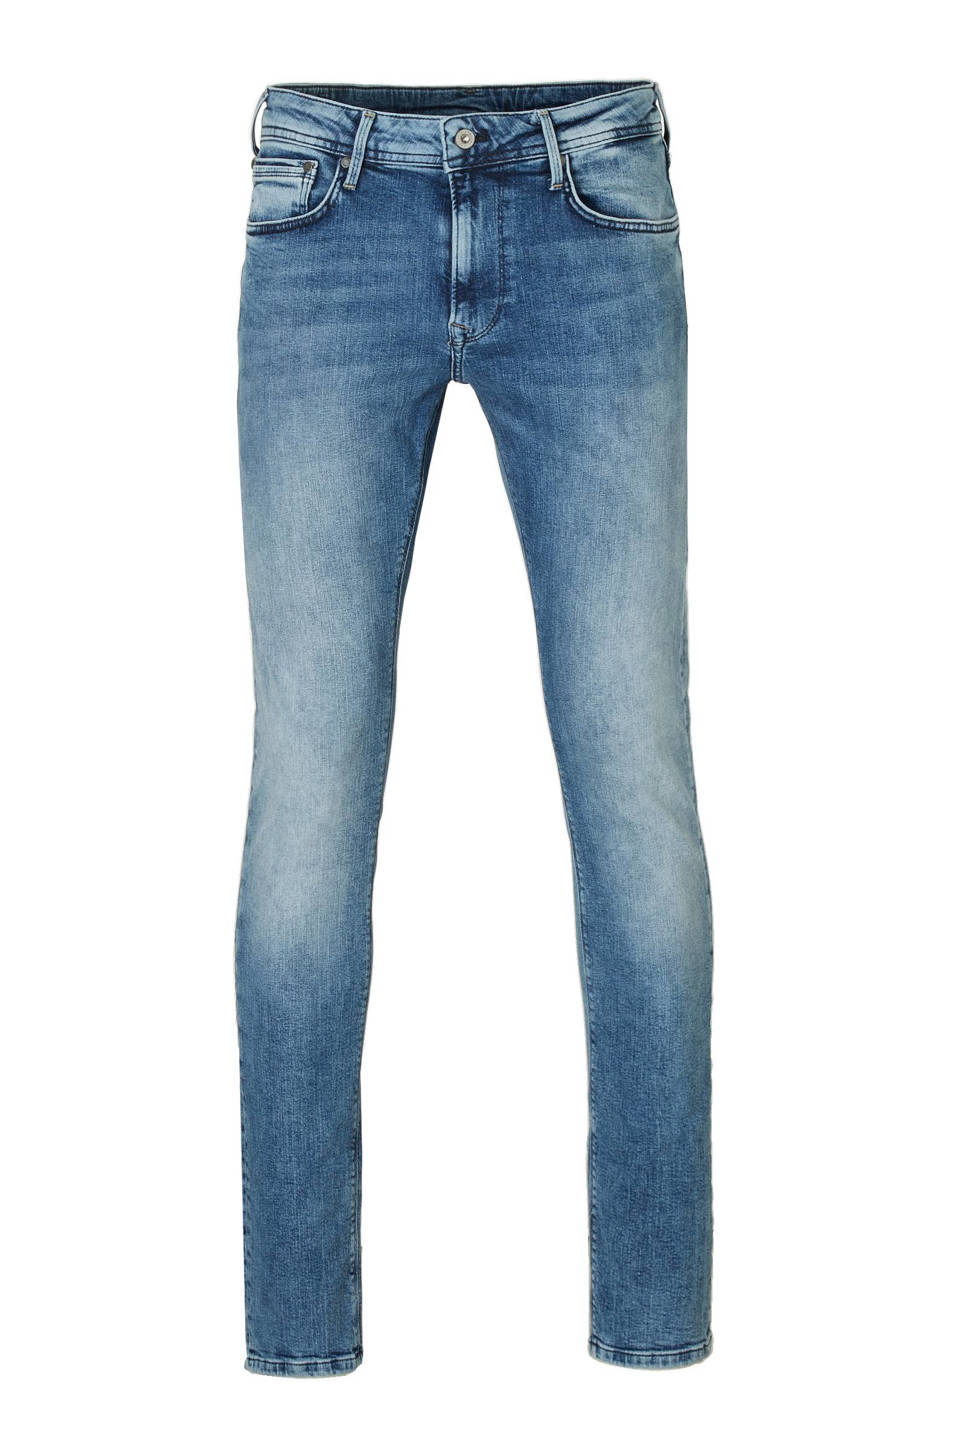 Pepe Jeans Stanley tapered fit jeans, Medium aged